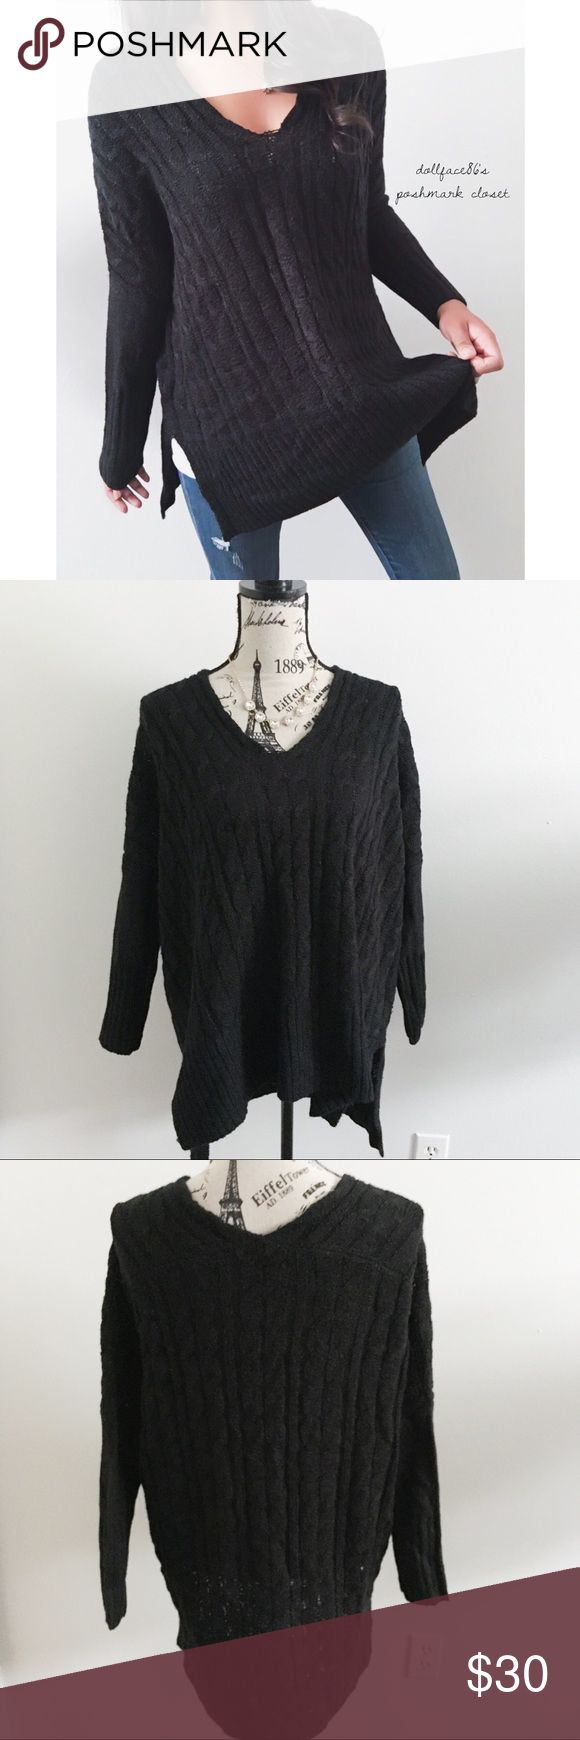 """Black Cable Knit Dolman Sweater ✦   ✦{I am not a professional photographer, actual color of item may vary ➾slightly from pics}  ❥chest:25.5"""" ❥waist:25"""" ❥length:28"""" ❥sleeves:25"""" collar-cuff ➳material/care:acrylic+7% polyester/machine wash  ➳fit:true ➳condition:gently used   ✦20% off bundles of 3/more items ✦No Trades  ✦NO HOLDS ✦No lowball offers/sales are final  ✦‼️BE A RESPONSIBLE BUYER PLS ASK QUESTIONS/USE MEASUREMENTS TO MAKE SURE THIS WILL WORK FOR {YOU} BEFORE PURCHASING ‼️ Boutique-So…"""